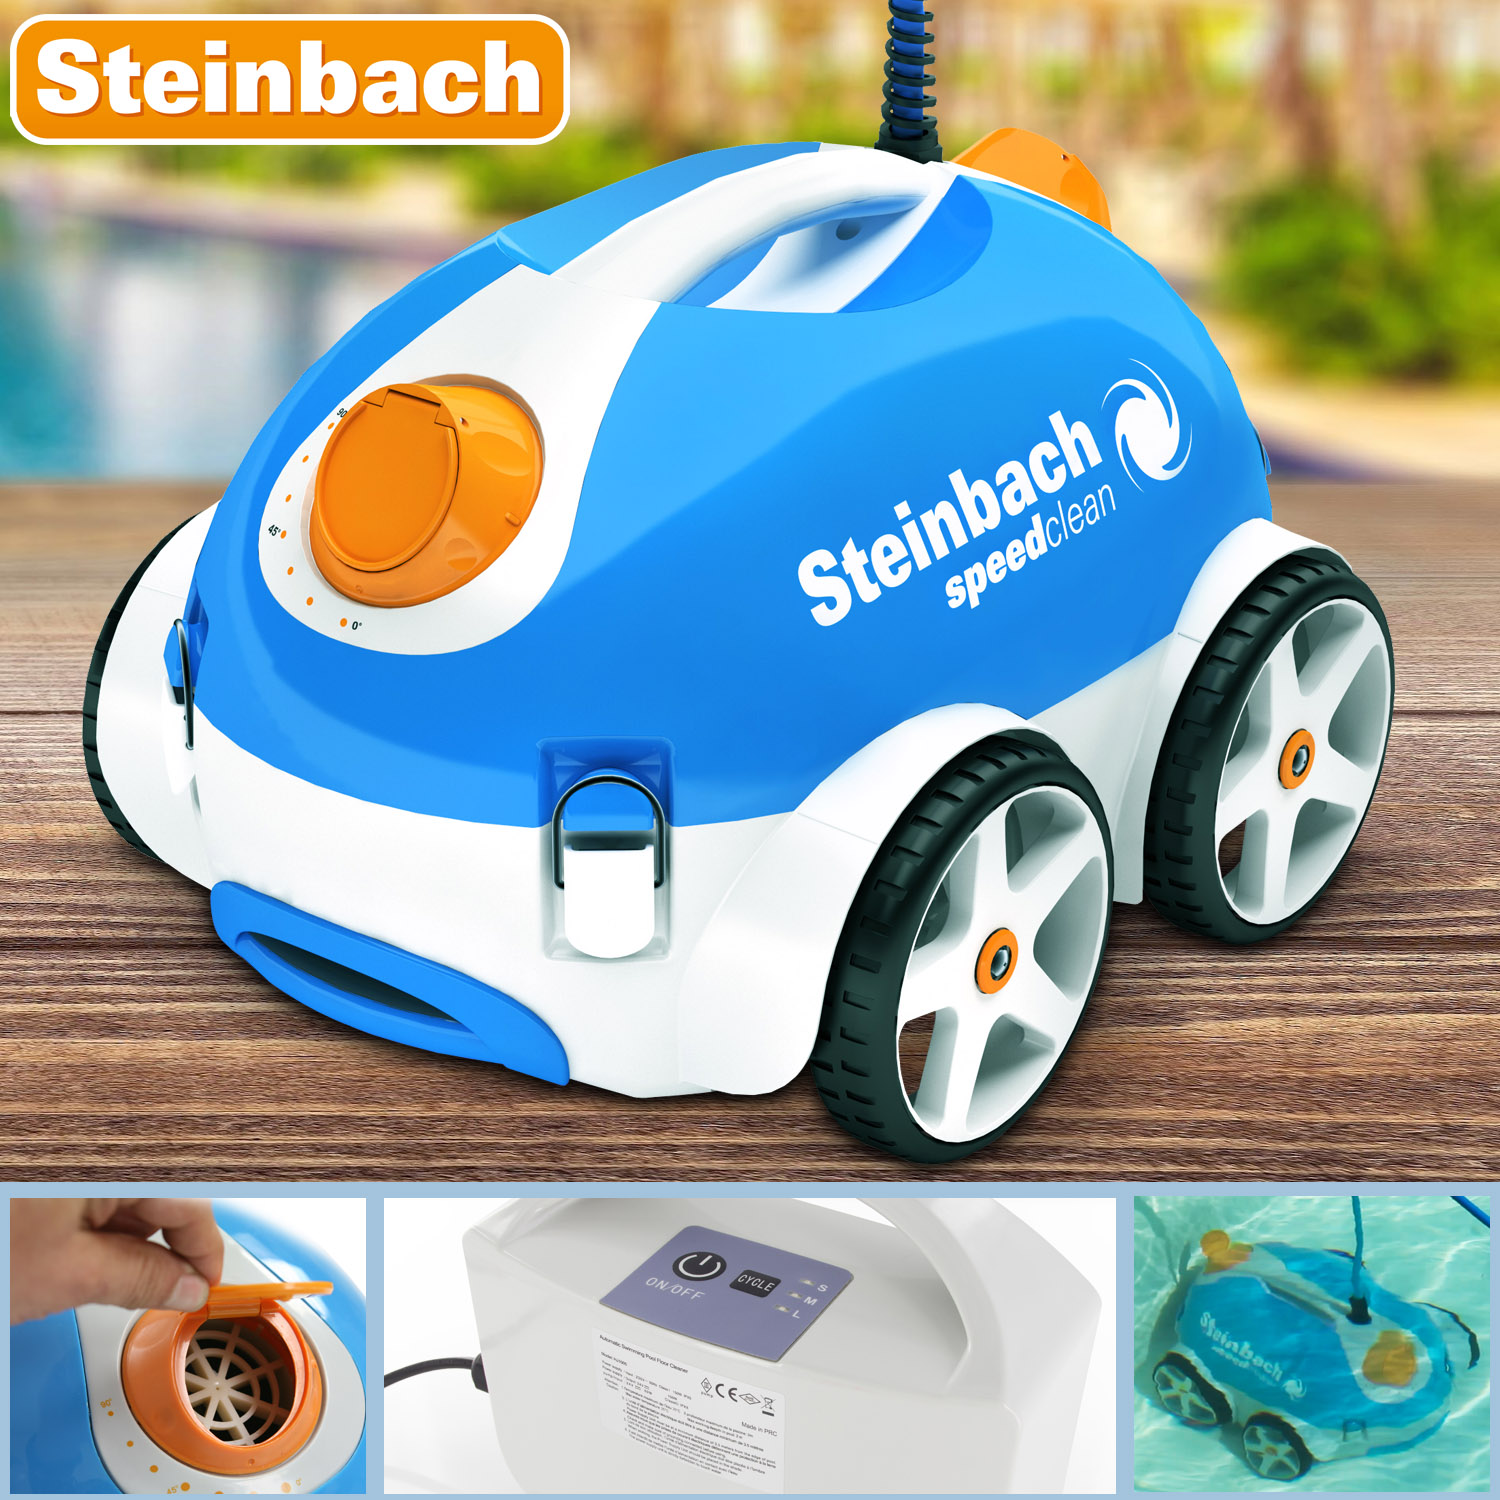 steinbach bodensauger poolreiniger poolroboter schwimmbadreiniger roboter pool ebay. Black Bedroom Furniture Sets. Home Design Ideas